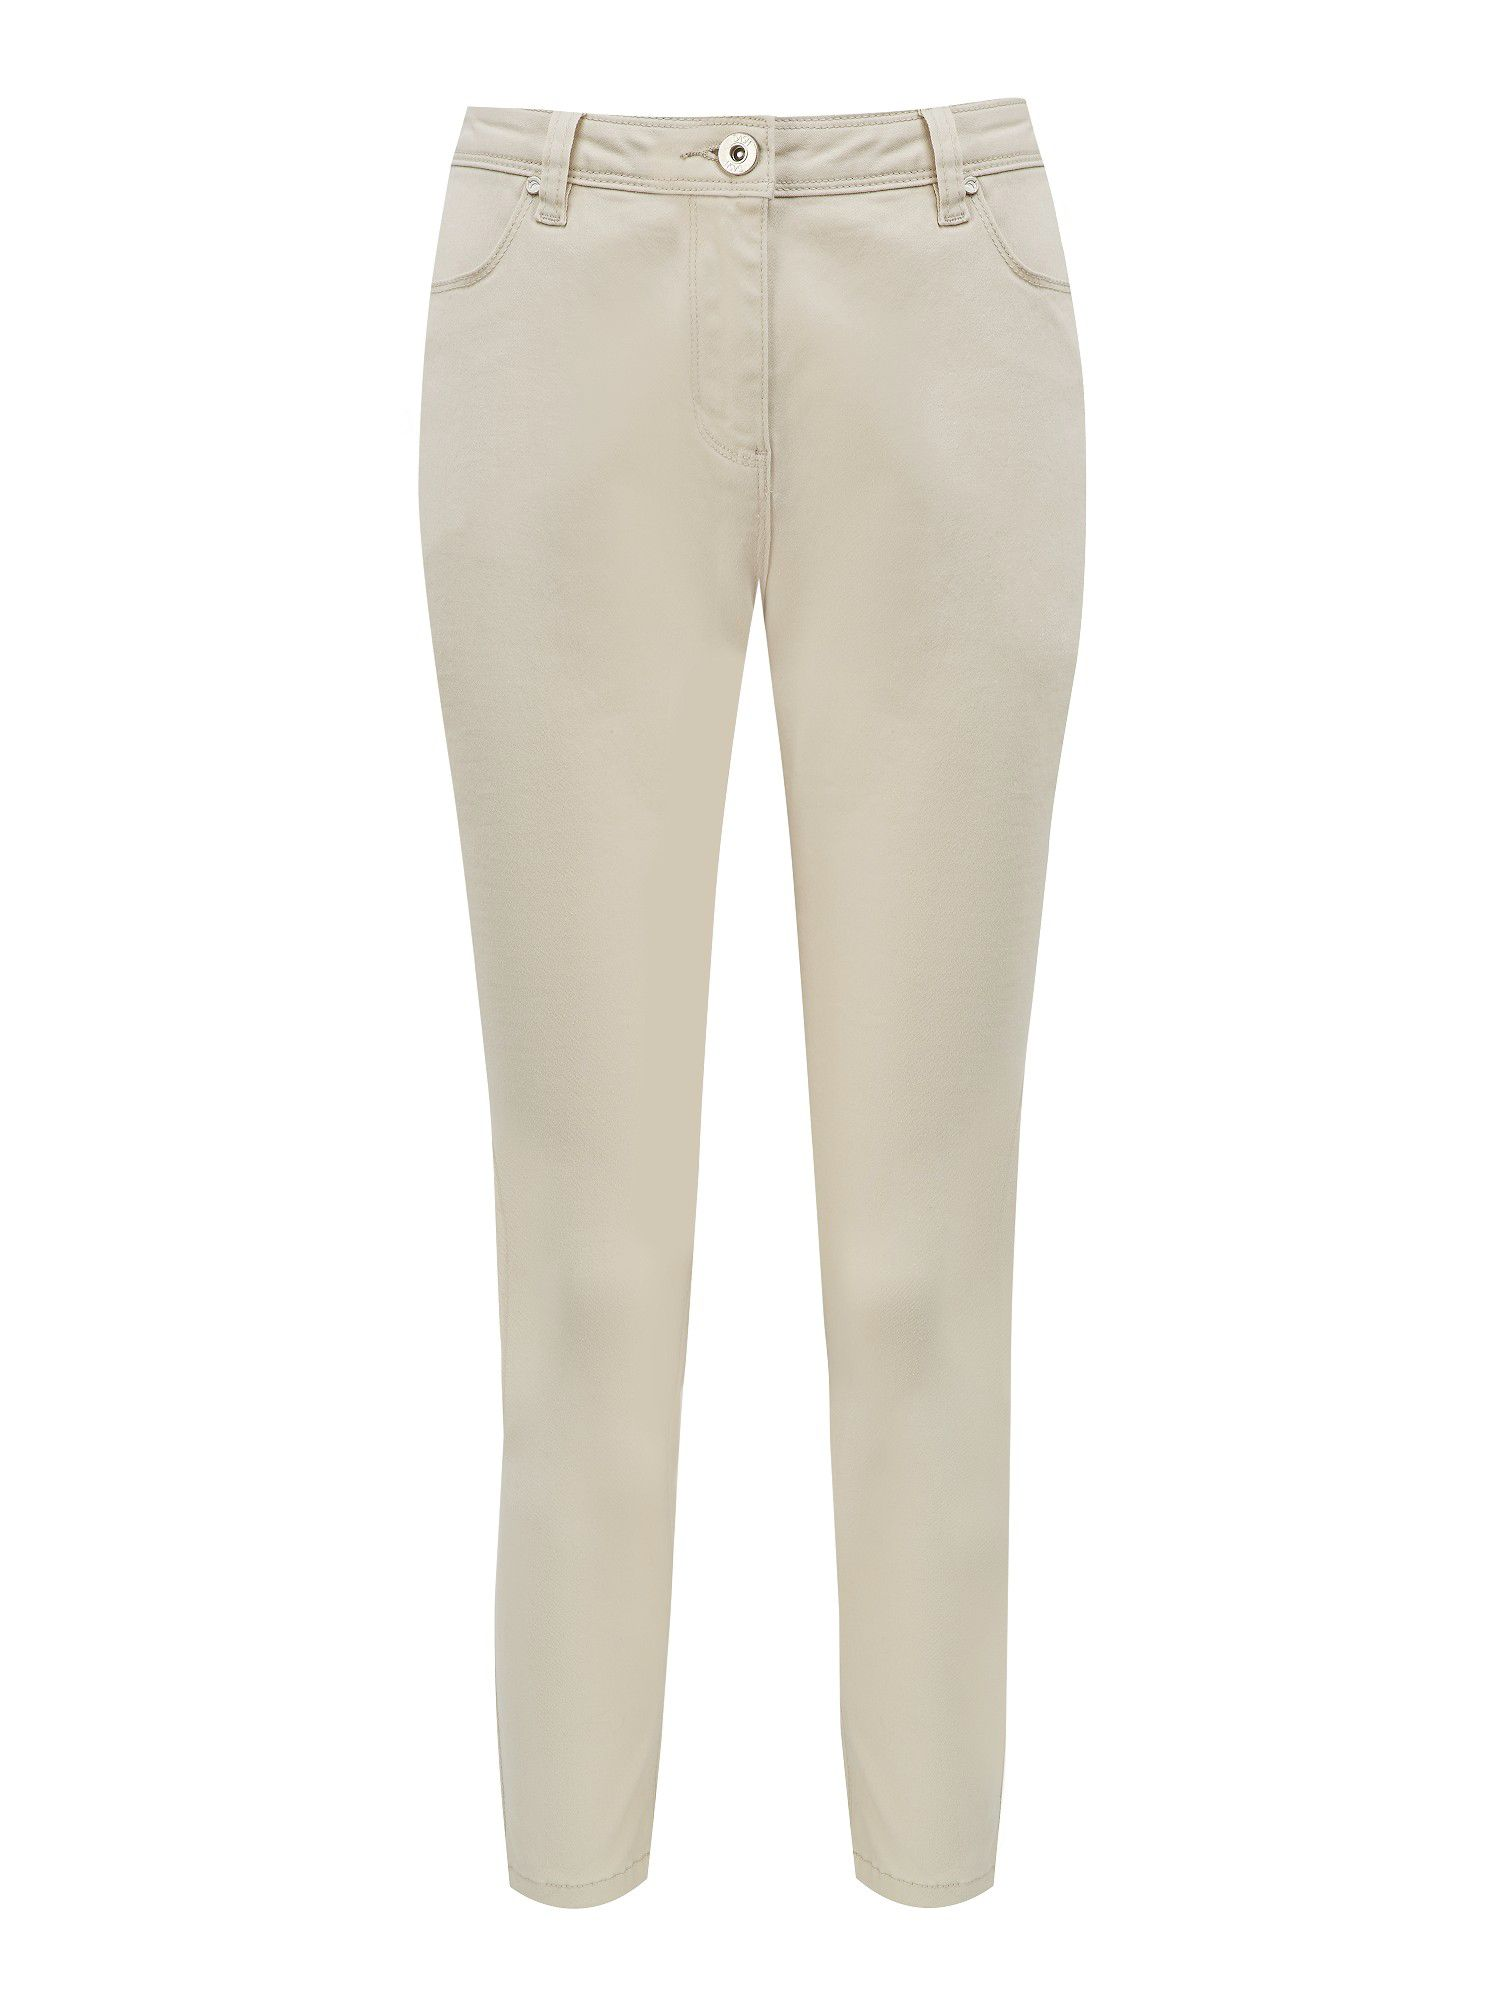 Chino trouser regular stone